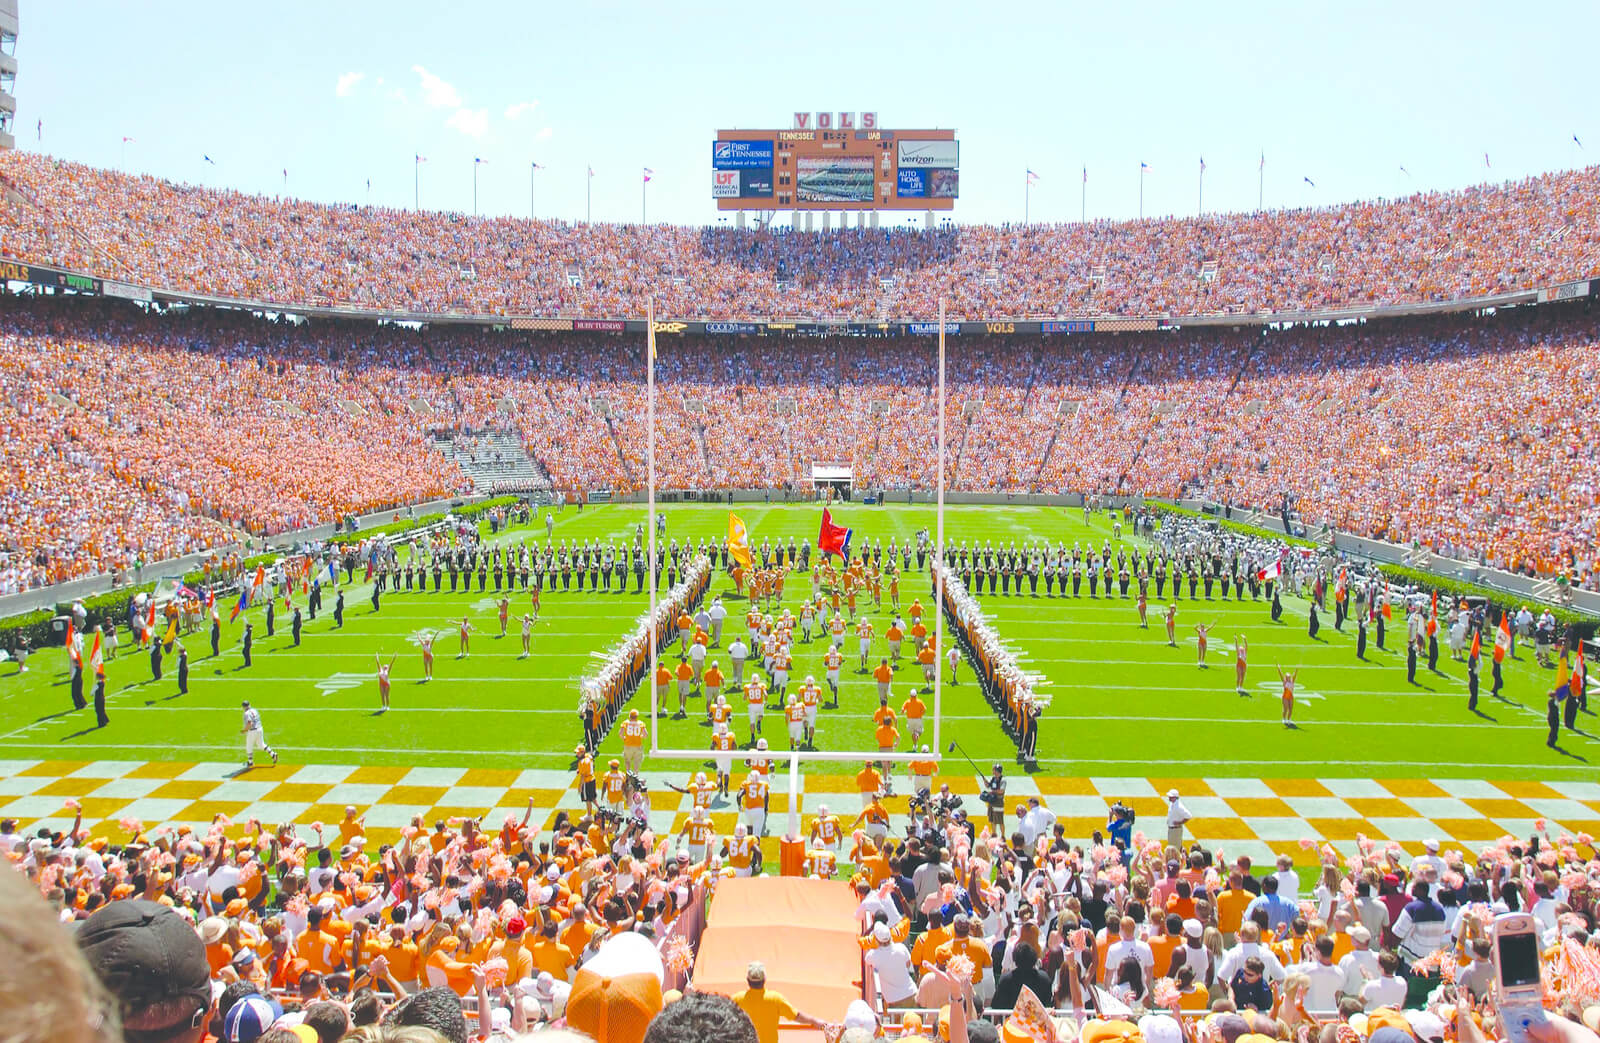 University of Tennessee Football in Knoxville, TN ...